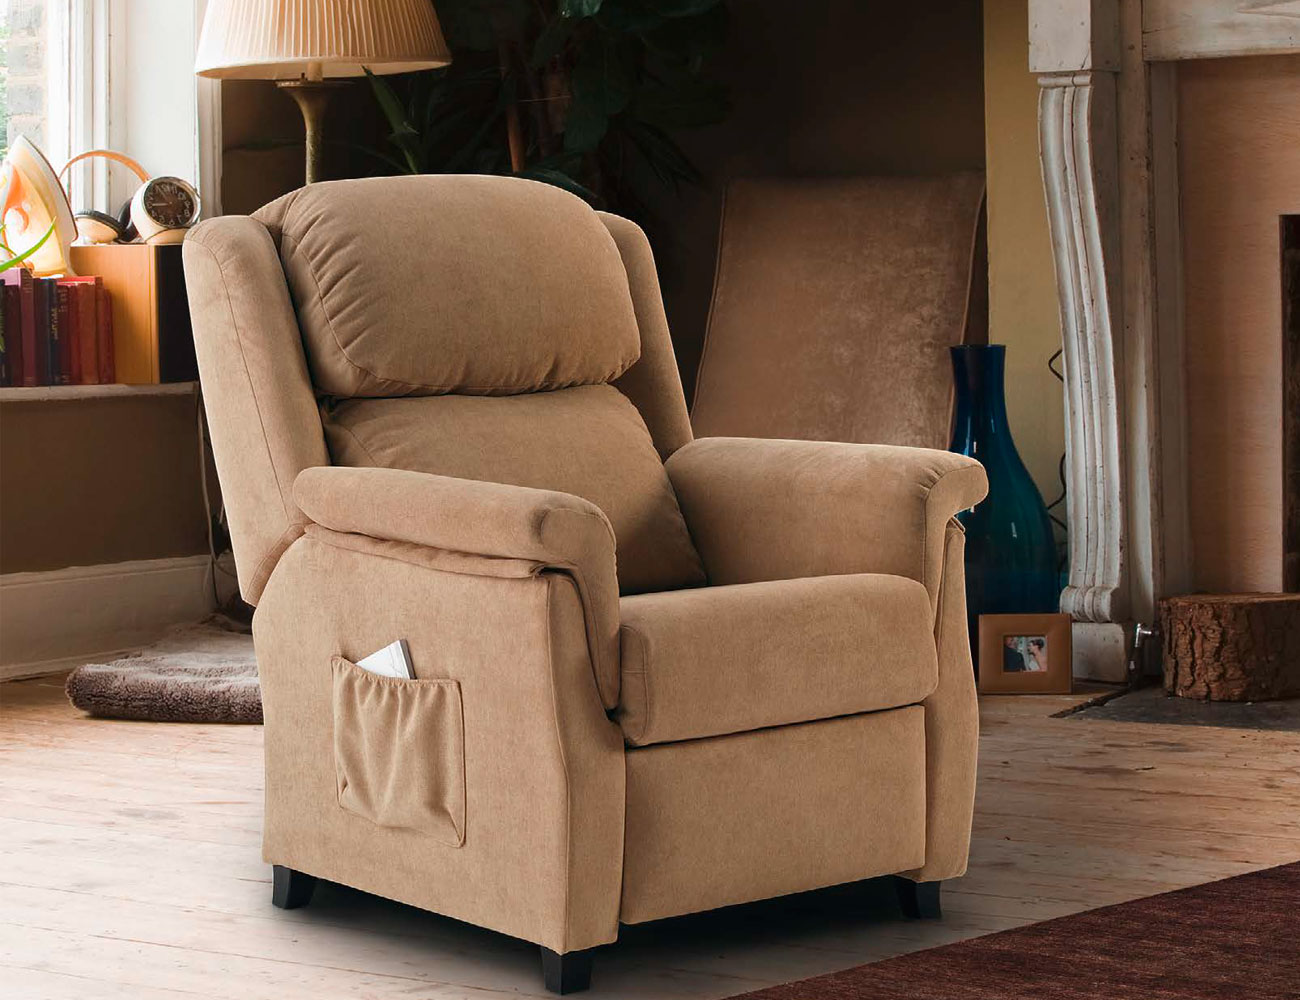 Sillon relax manual bianca 115